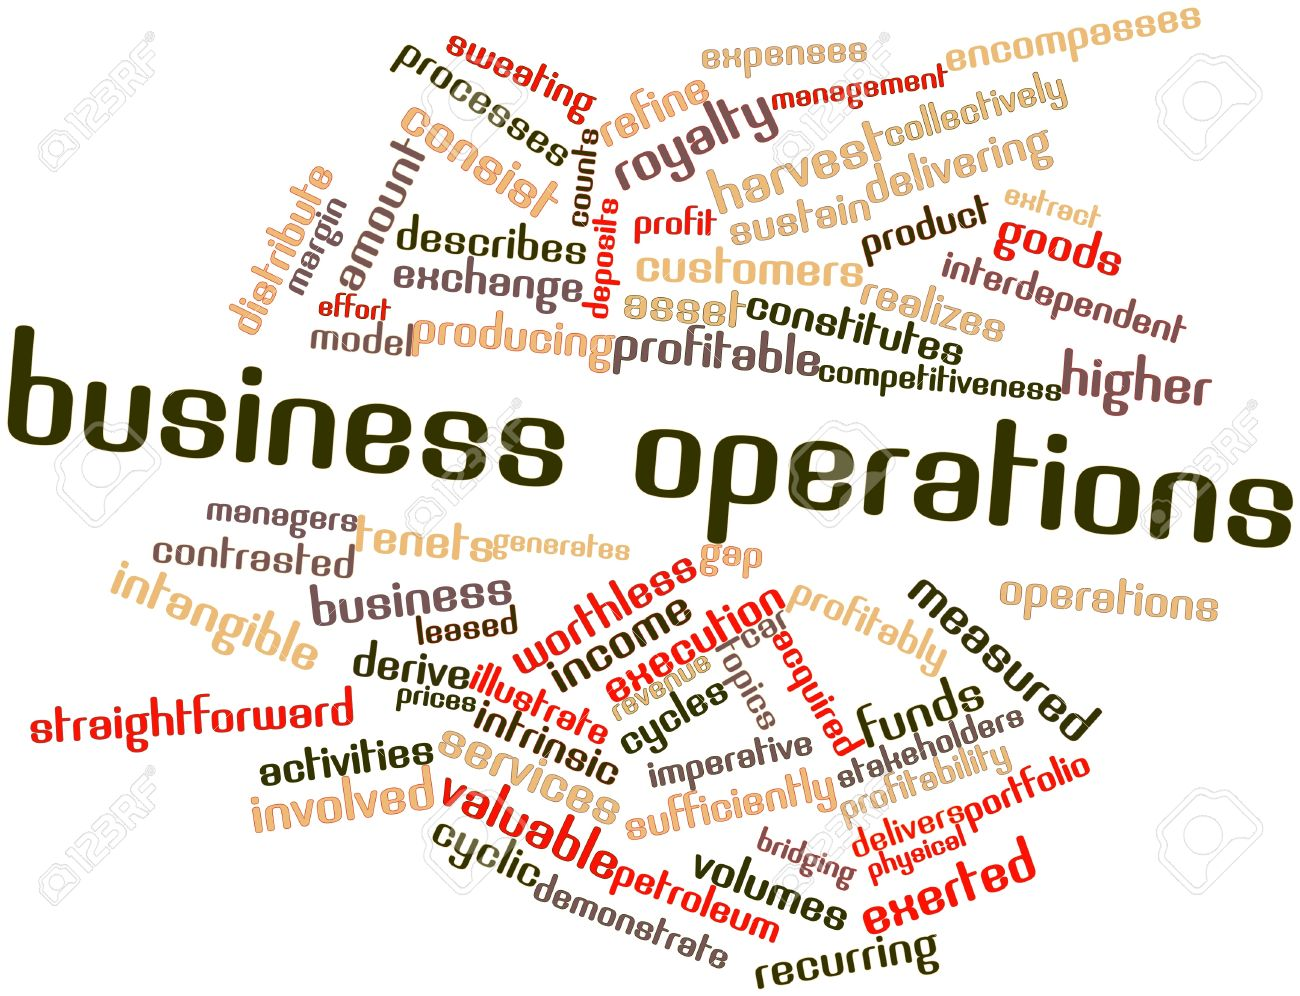 operations management in business According to the us department of education, operations management is a field of business involved with managing and directing the physical and technical functions of a business or organization.